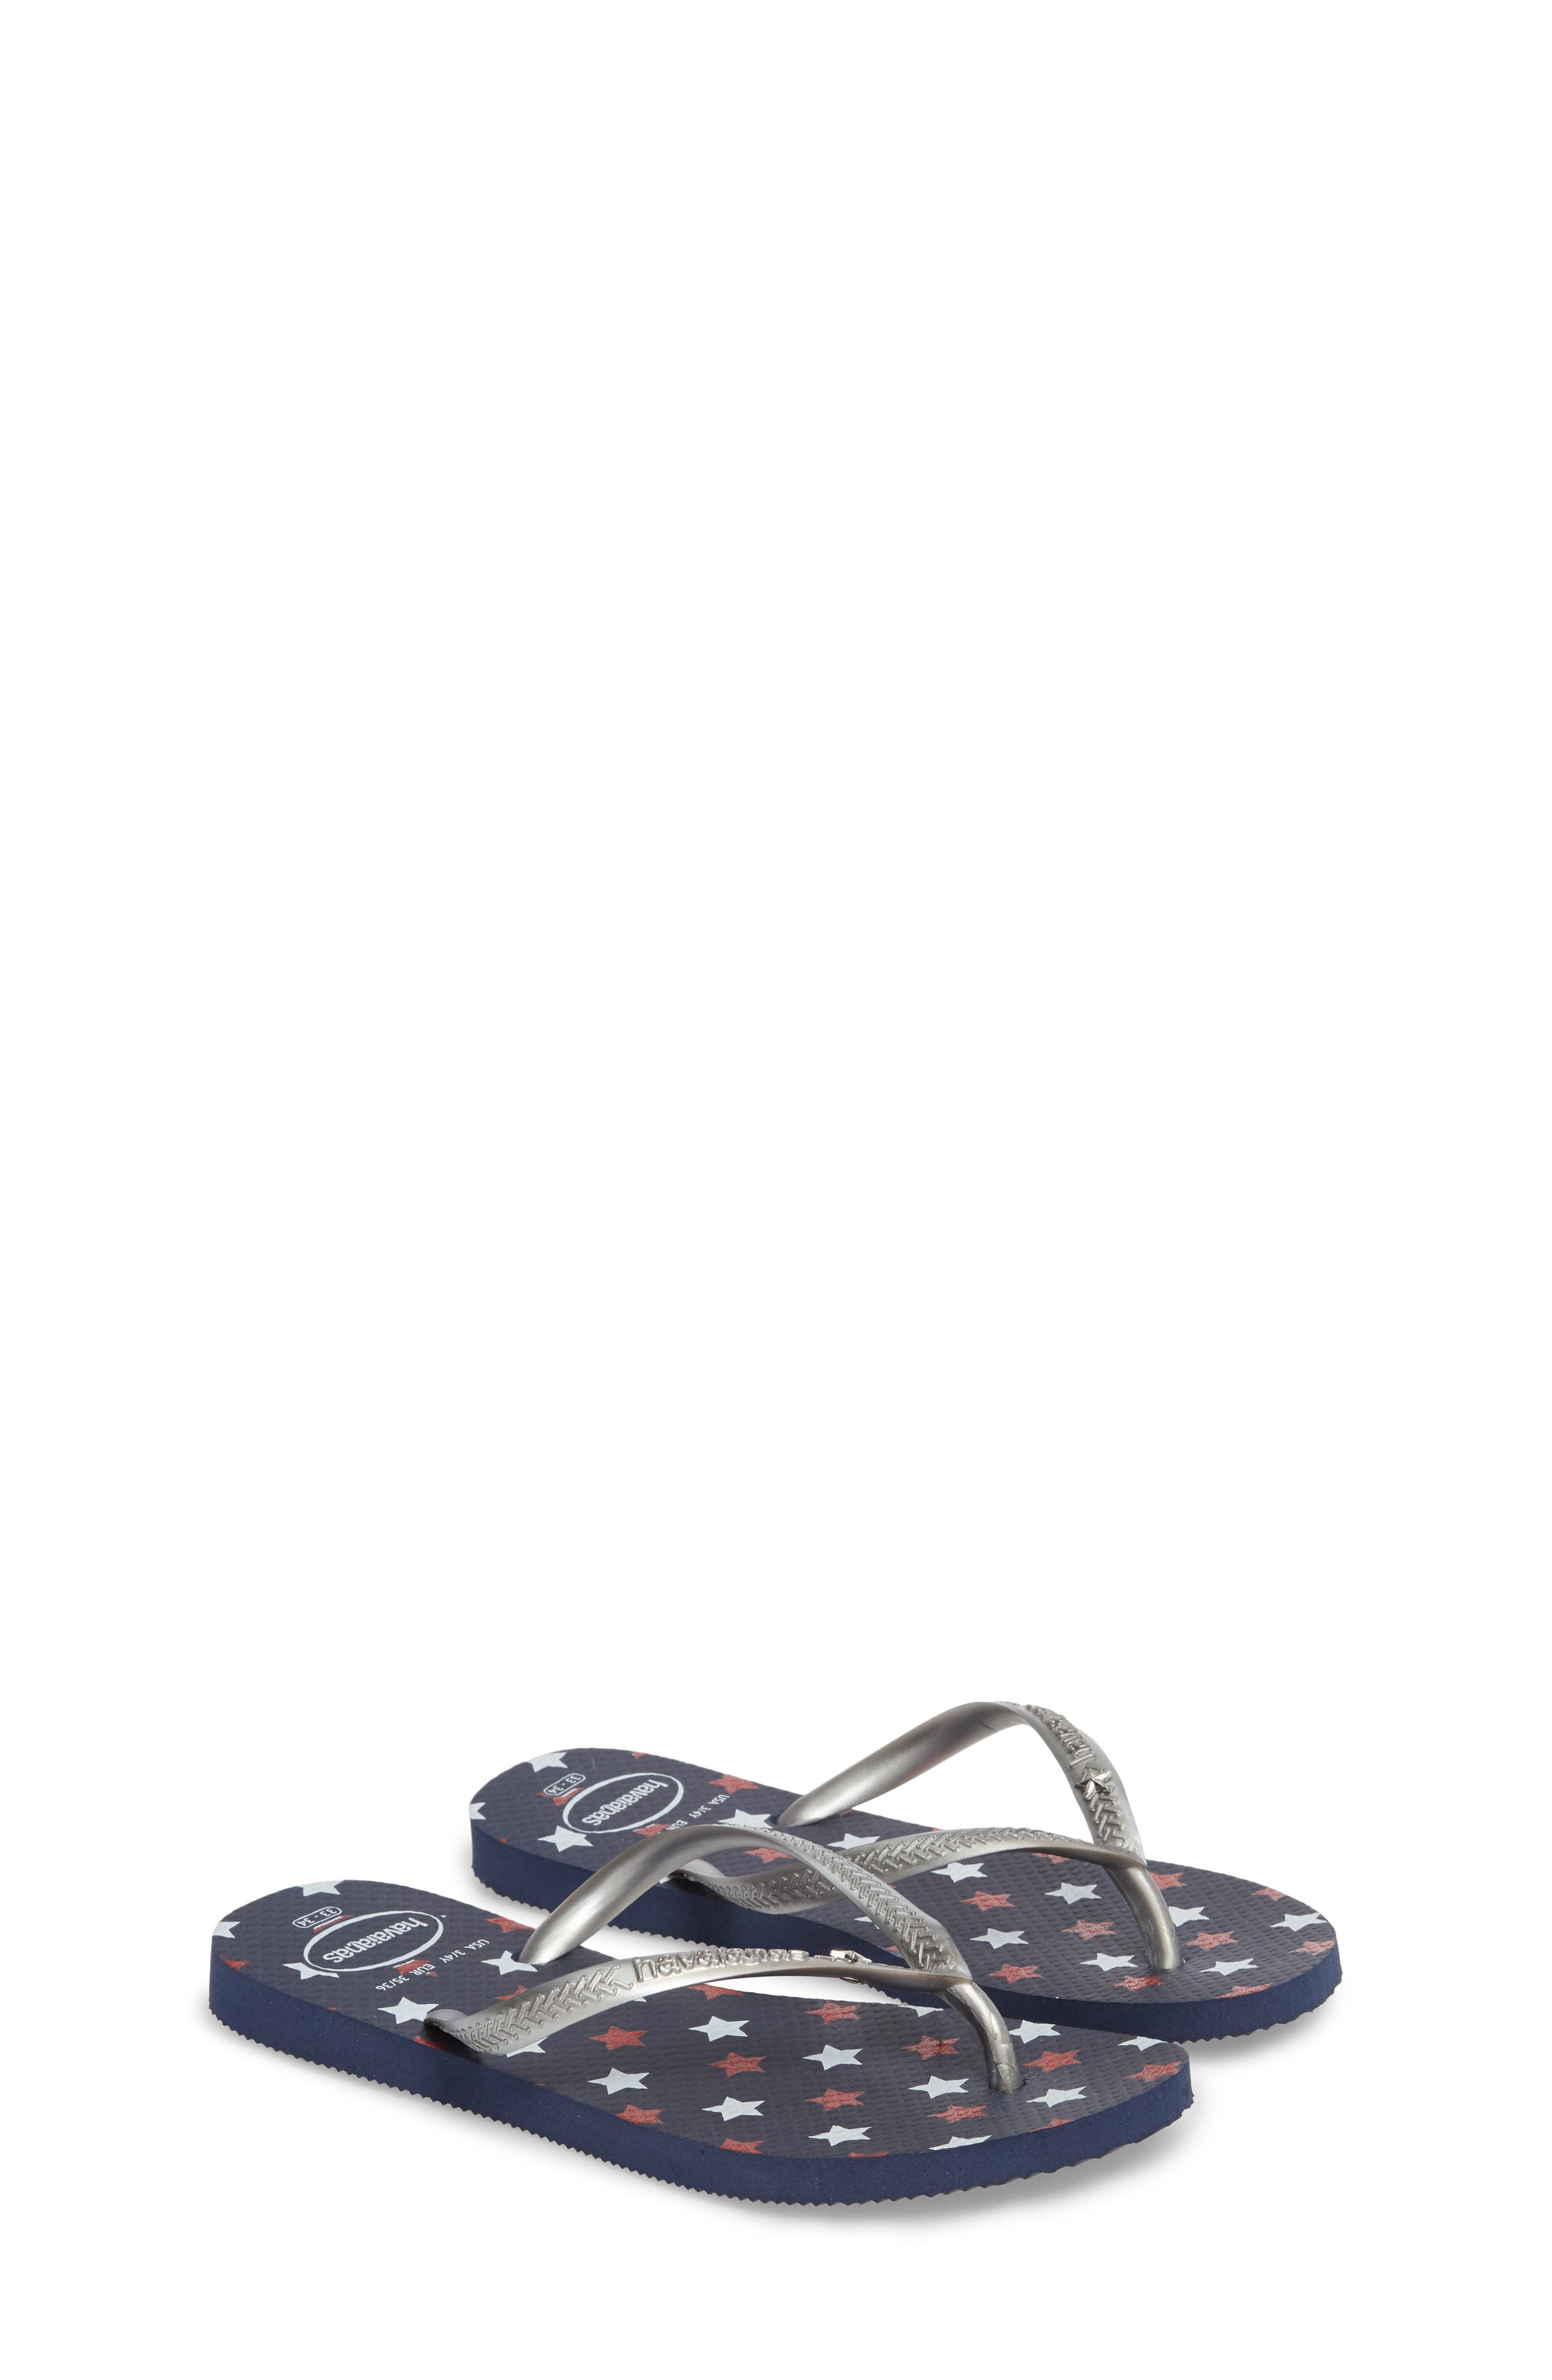 Havianas Slim Stars Glitter Flip Flop,                         Main,                         color, Navy Blue